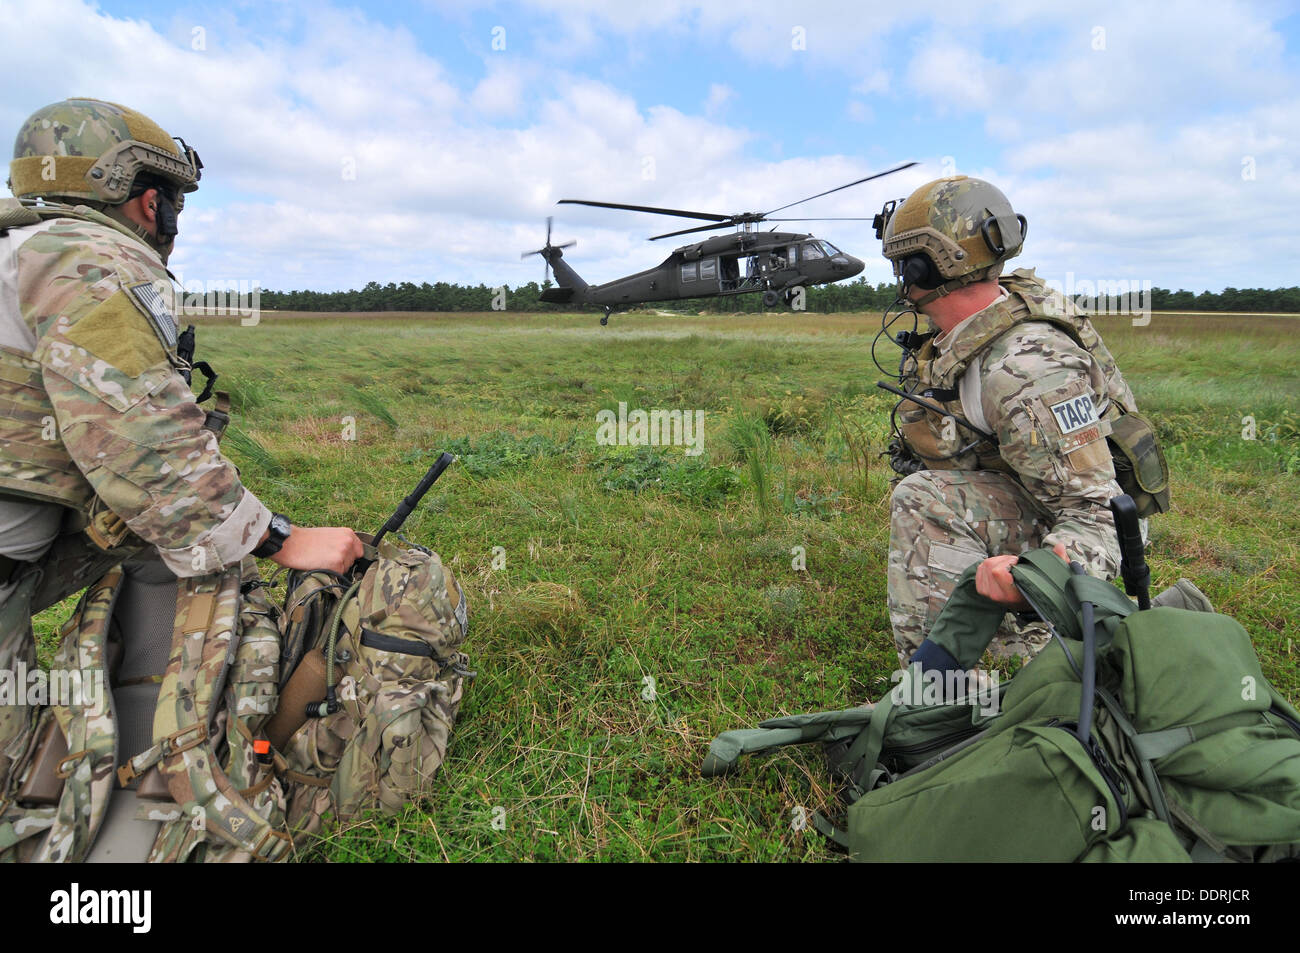 U.S. Air Force Staff Sgt. Kane Lawlor (left), and Airman First Class Joshua Darins (right) prepare to board a UH-60 Black Hawk helicopter from the New Jersey Army National Guard's 1-150 Assault Helicopter Battalion during training at Warren Grove Gunnery - Stock Image